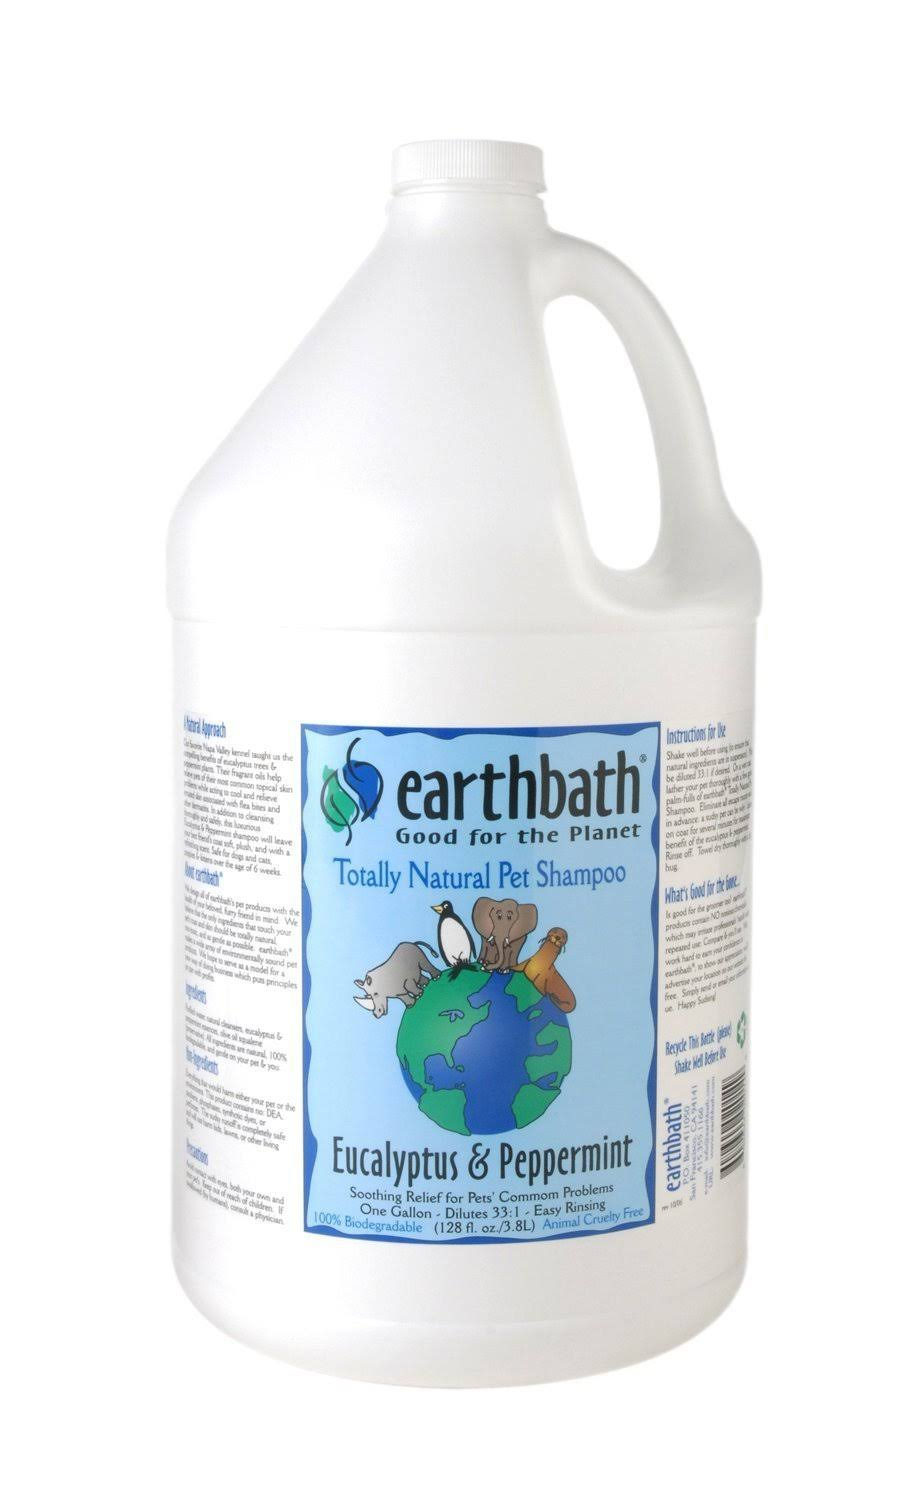 Earthbath Concentrated Shampoo - Eucalyptus and Peppermint, 1 gallon